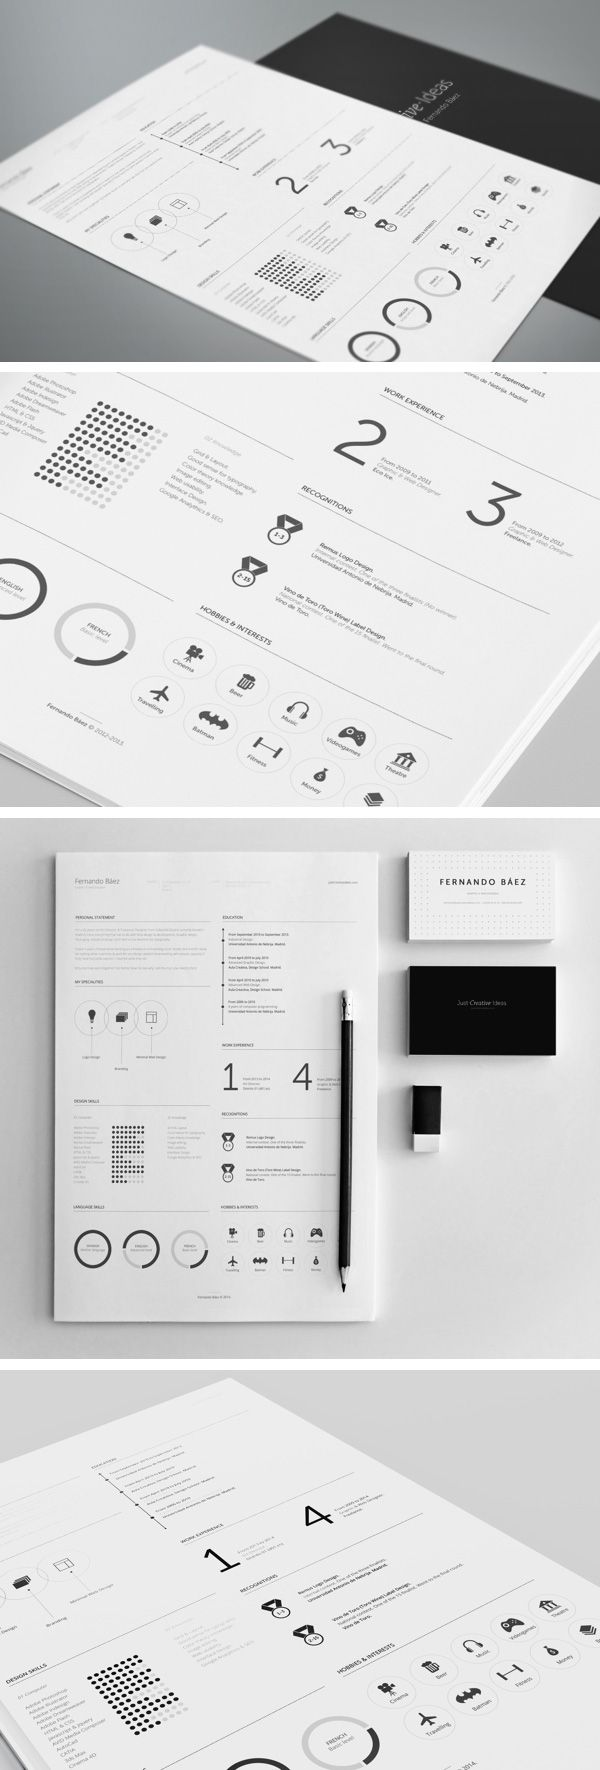 Designer & Developer Resume Template Resumes